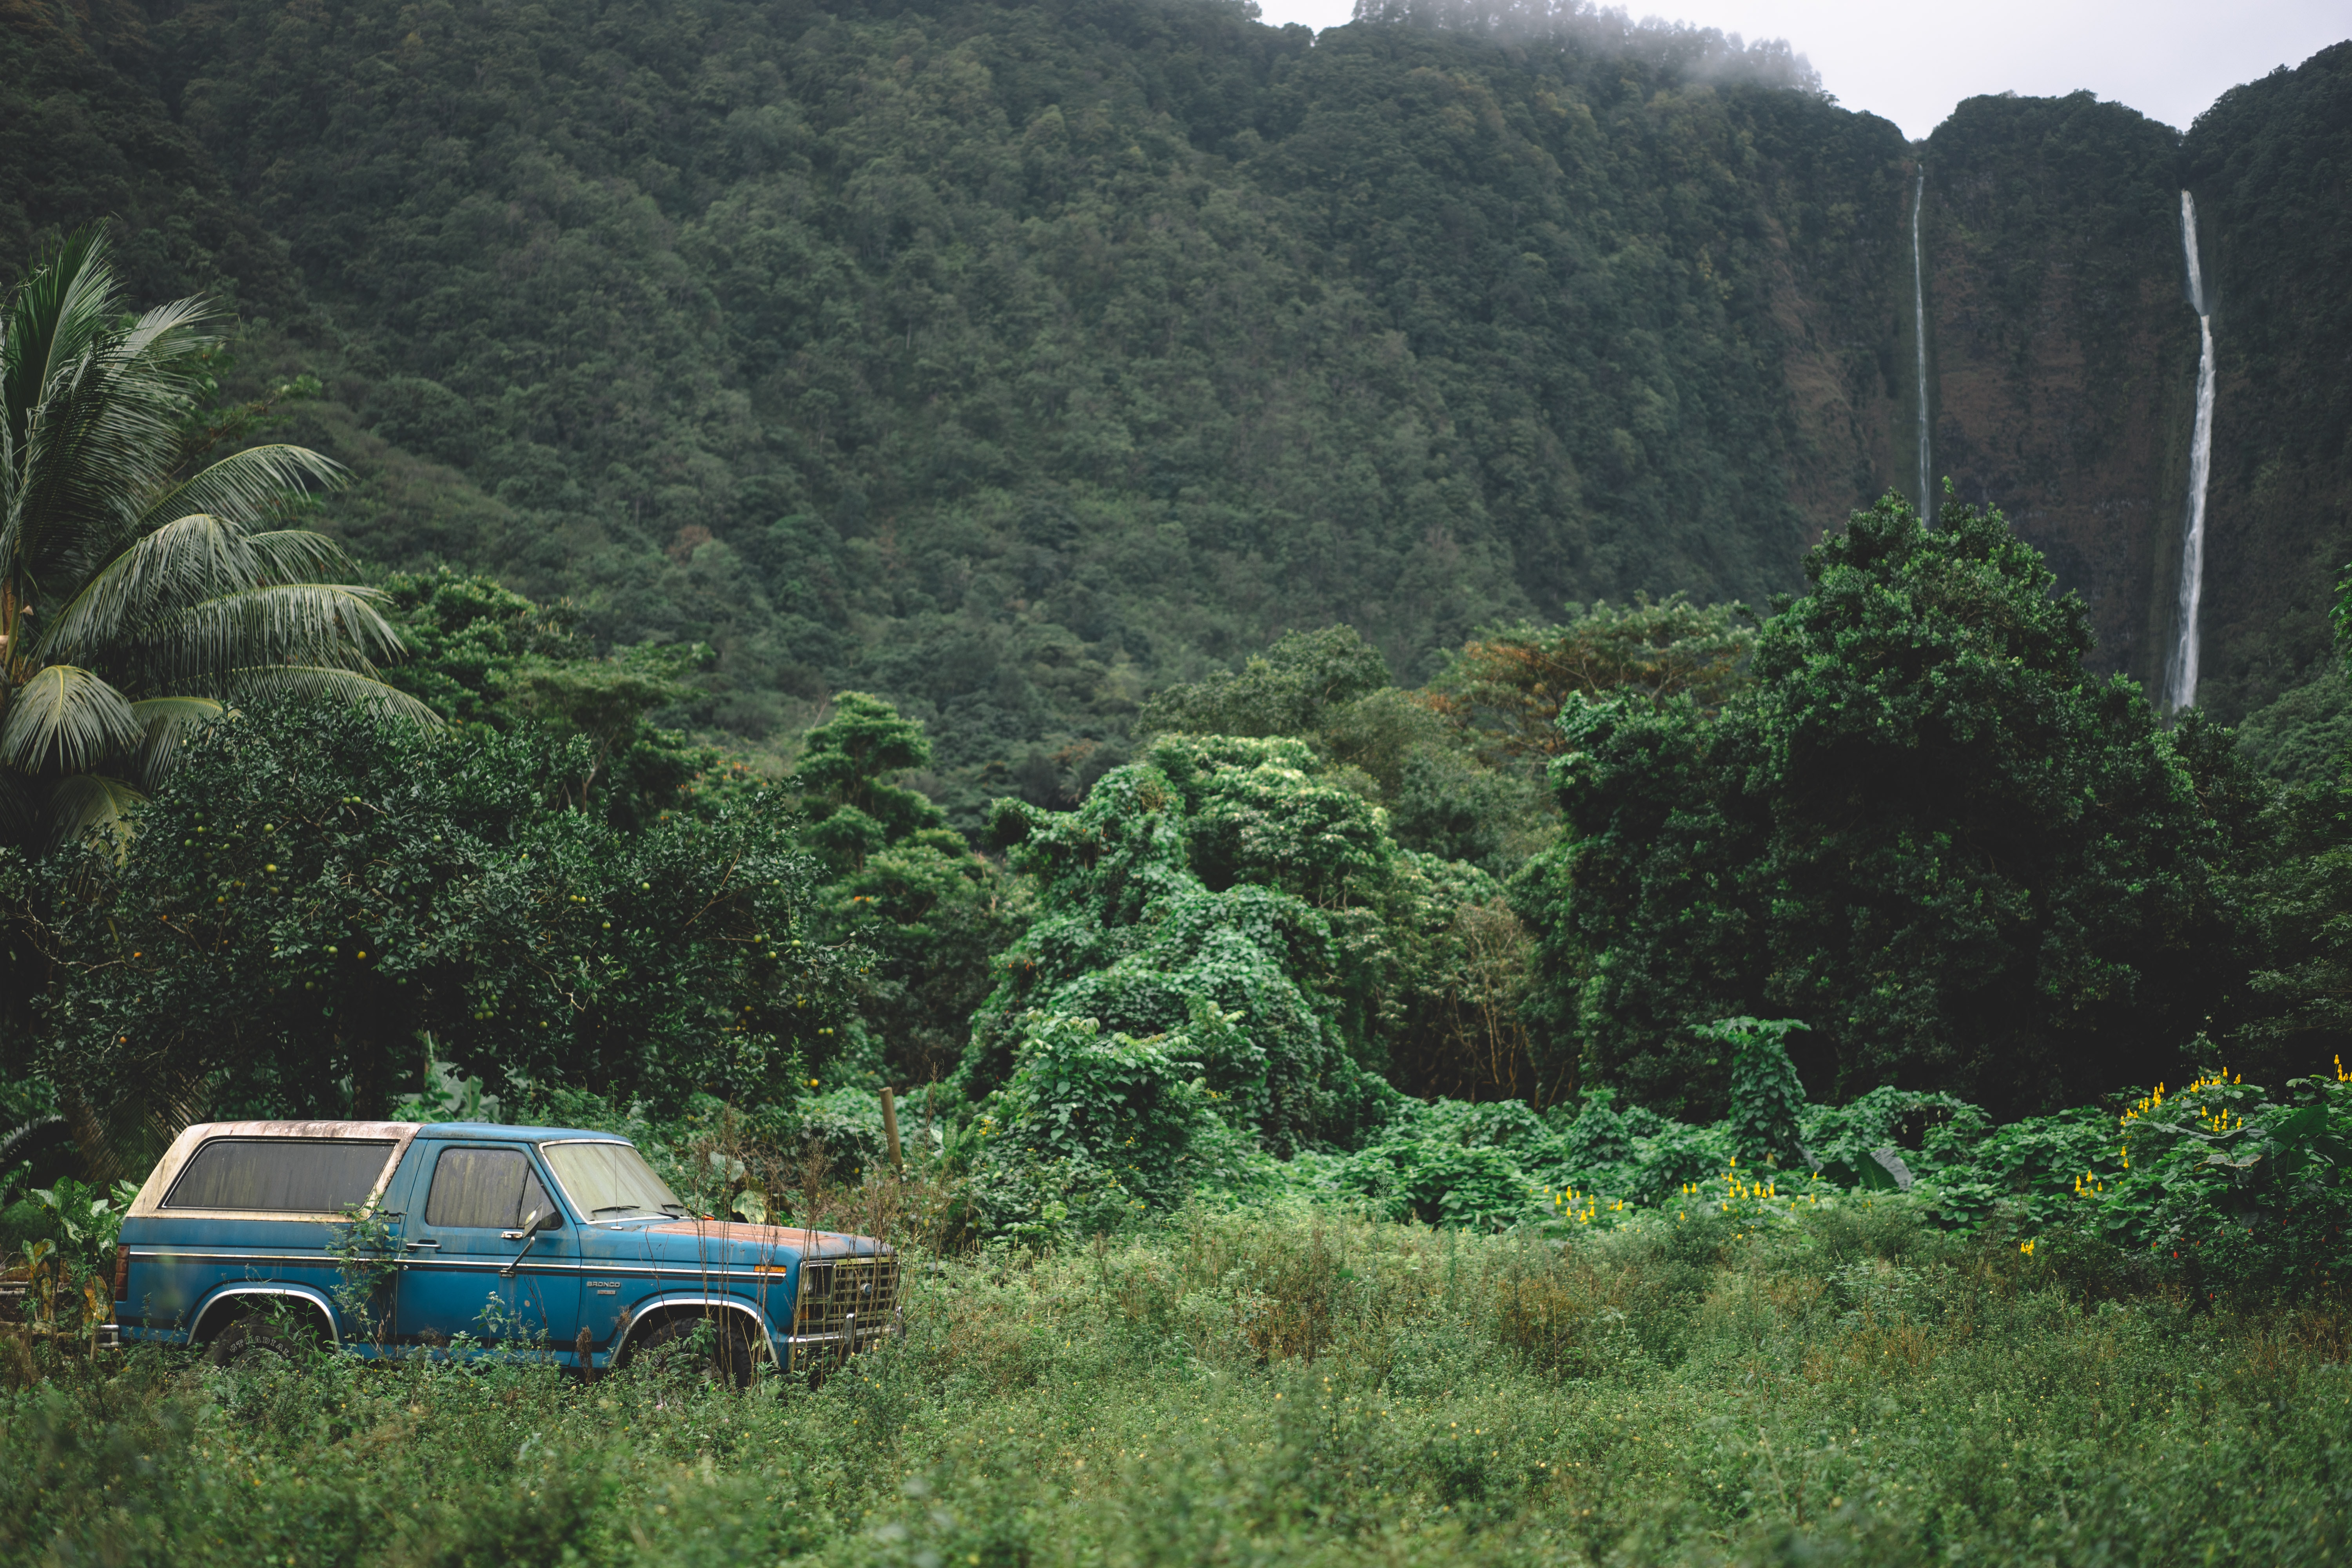 A blue SUV parked in the green thicket near rock face with twin waterfalls